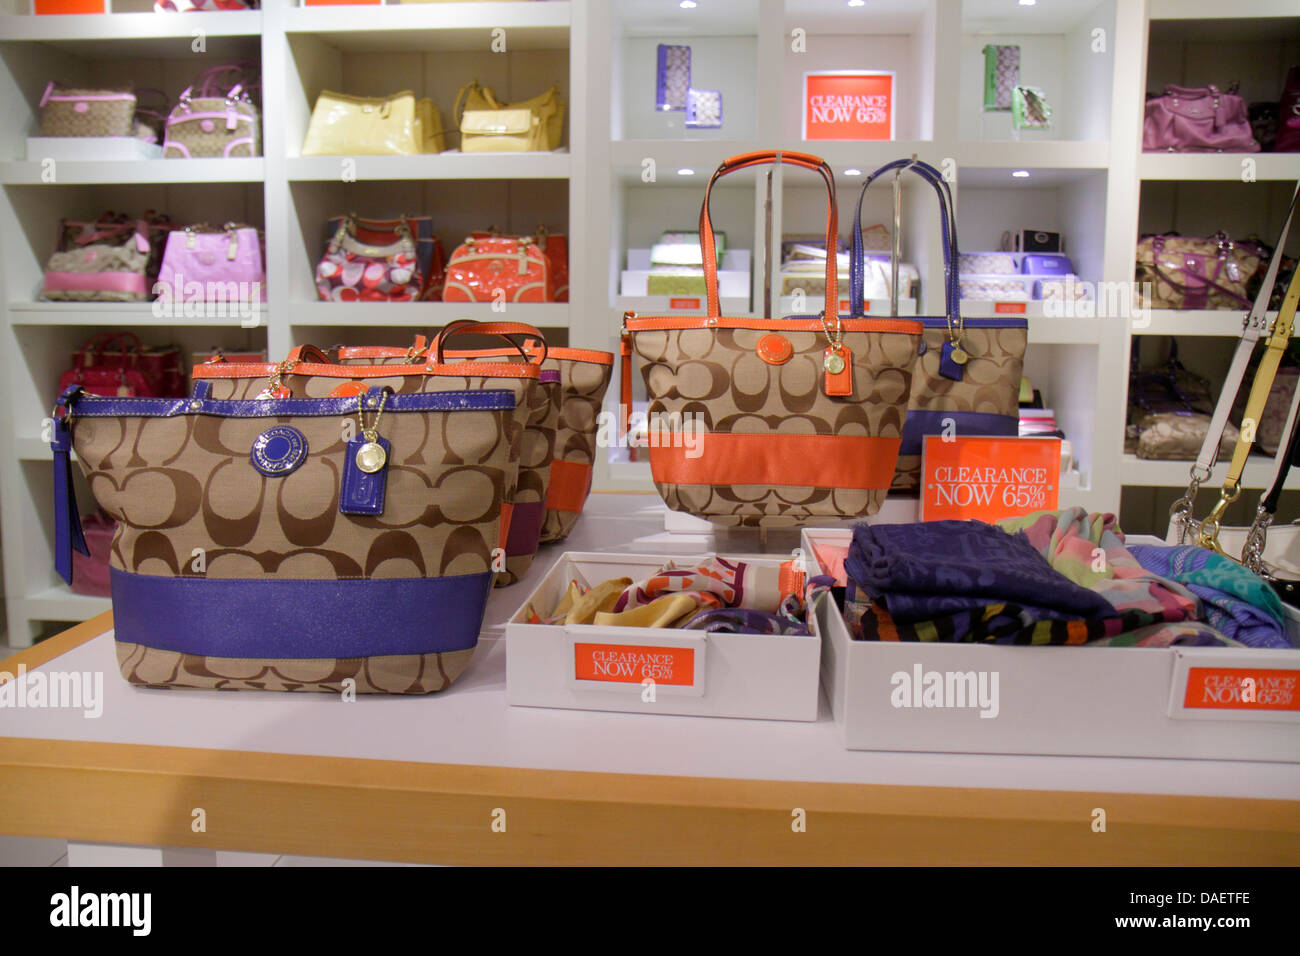 Miami Florida City Florida Florida Keys Outlet Center centre shopping Coach  women s sale retail display fashion handbags clearan 424ddbe806738